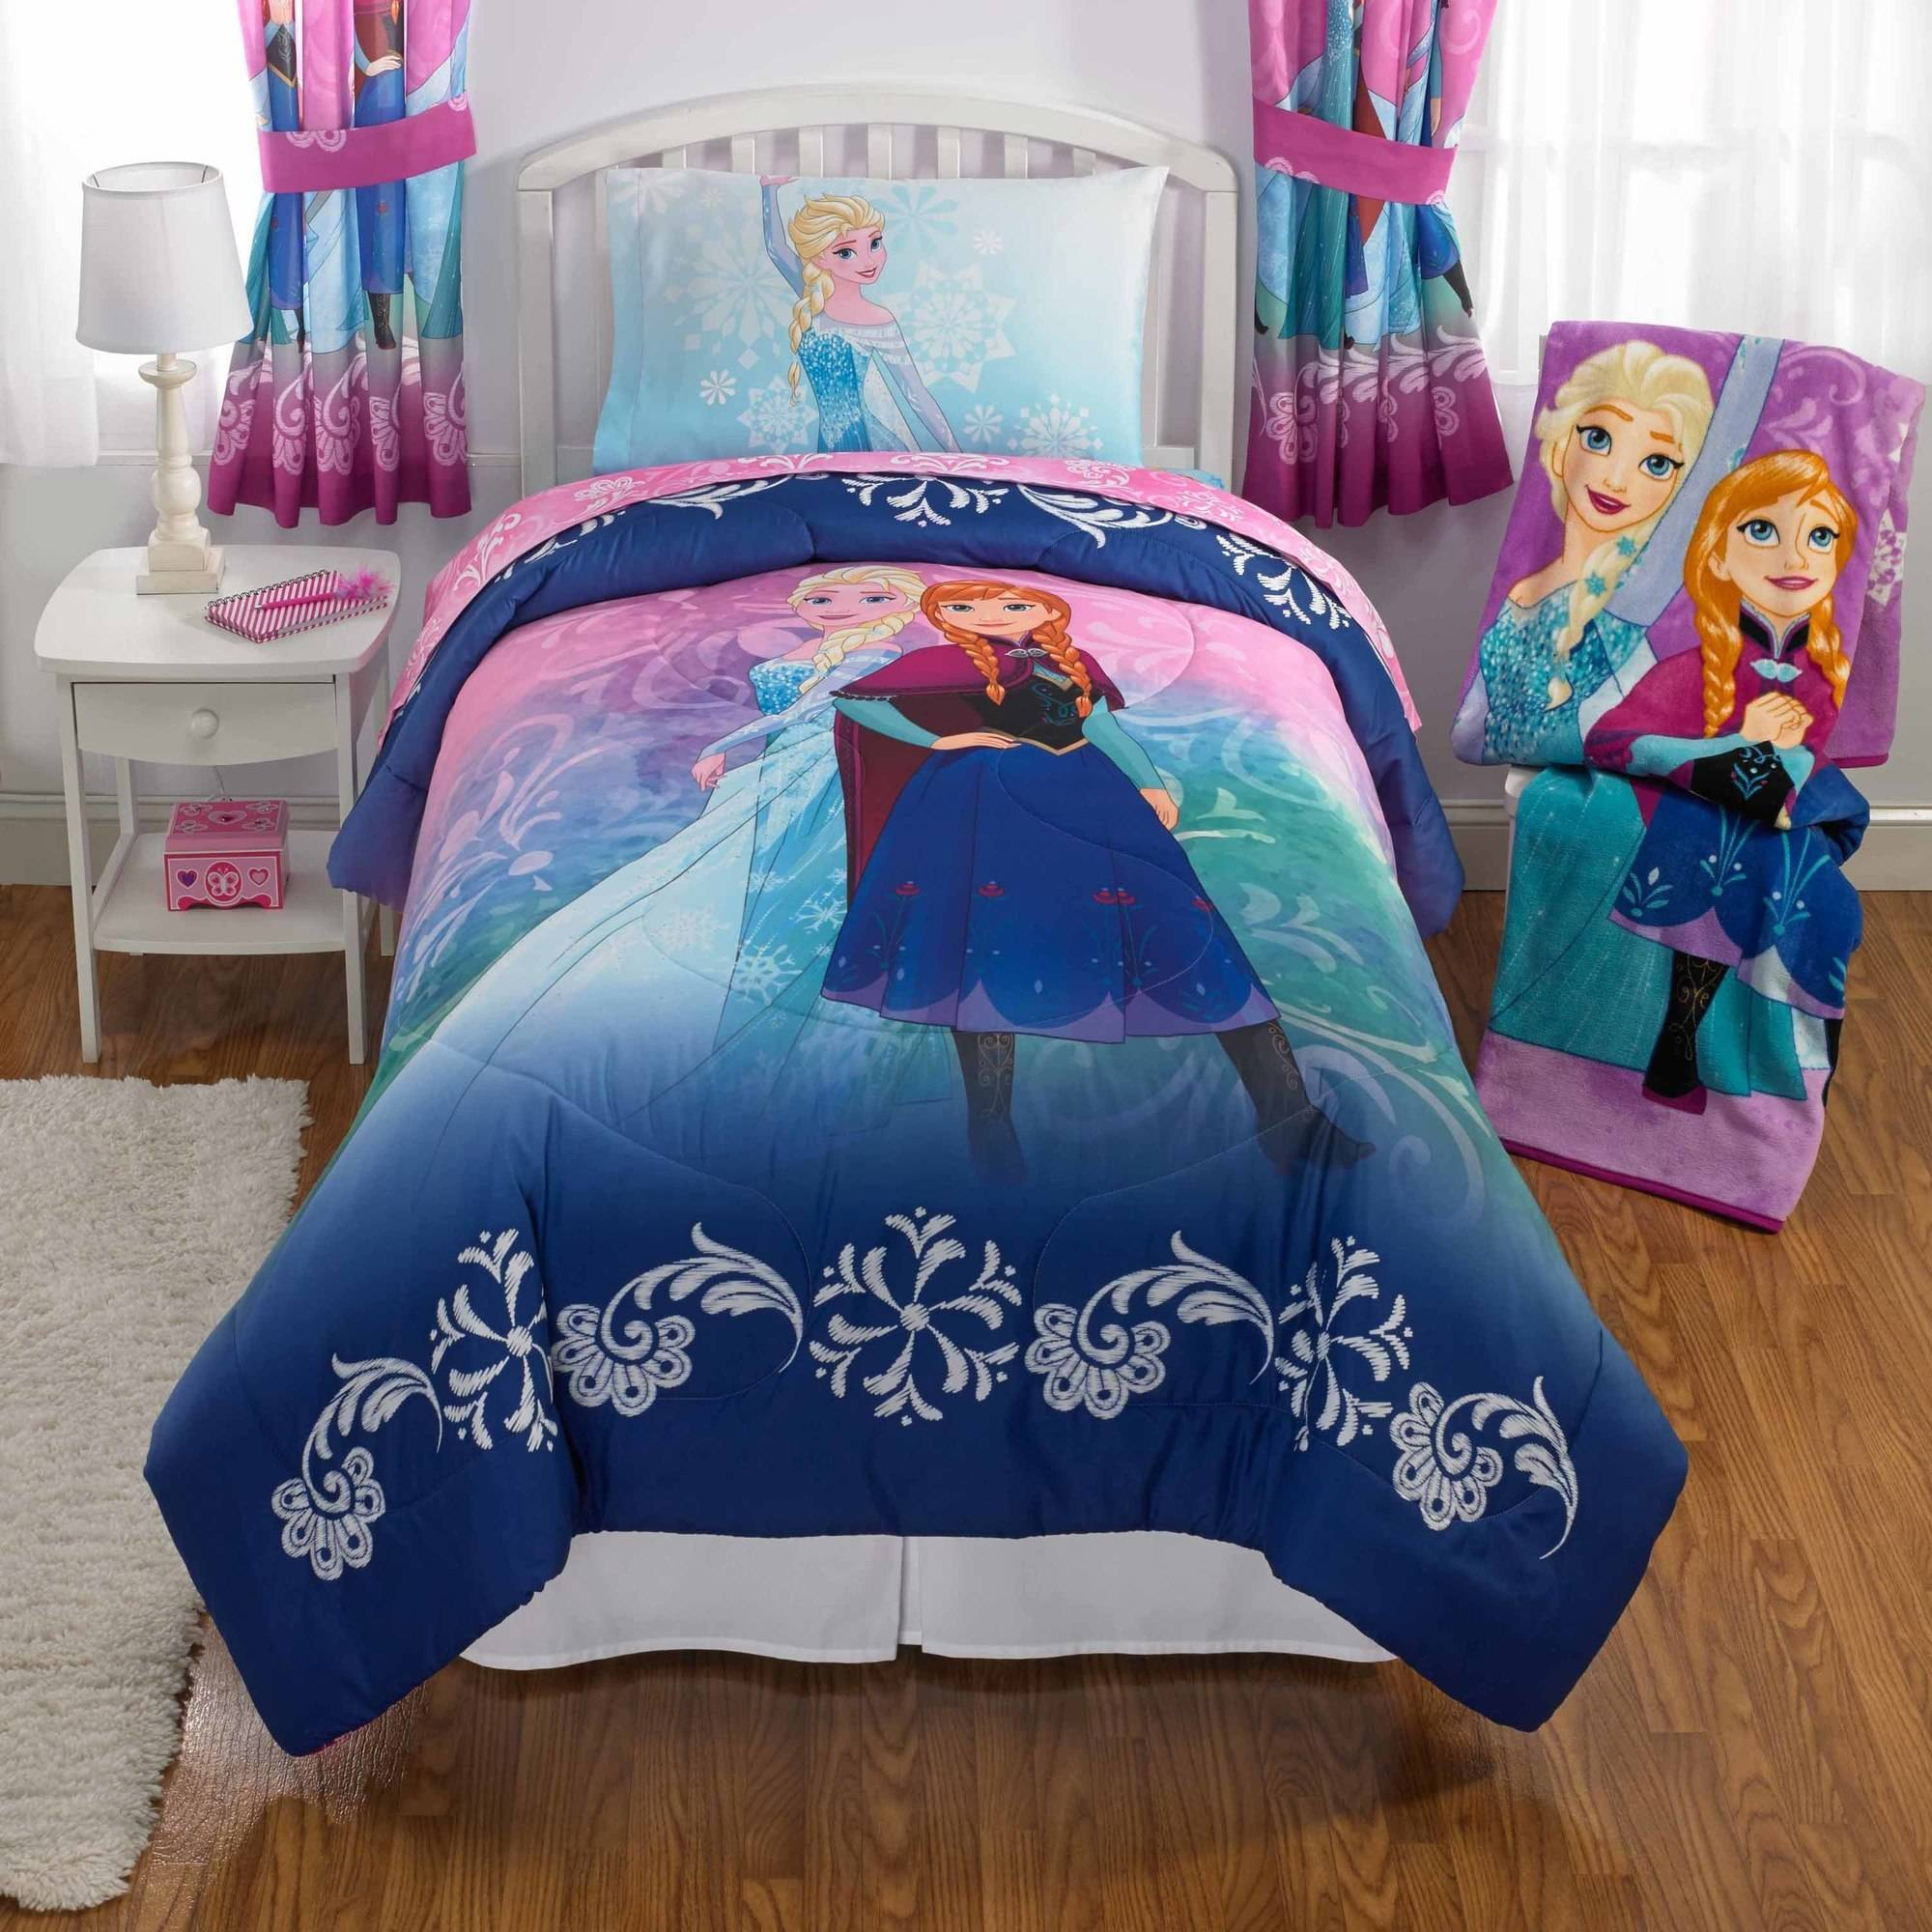 Disney S Frozen Nordic Frost Bed In Bag Bedding Set